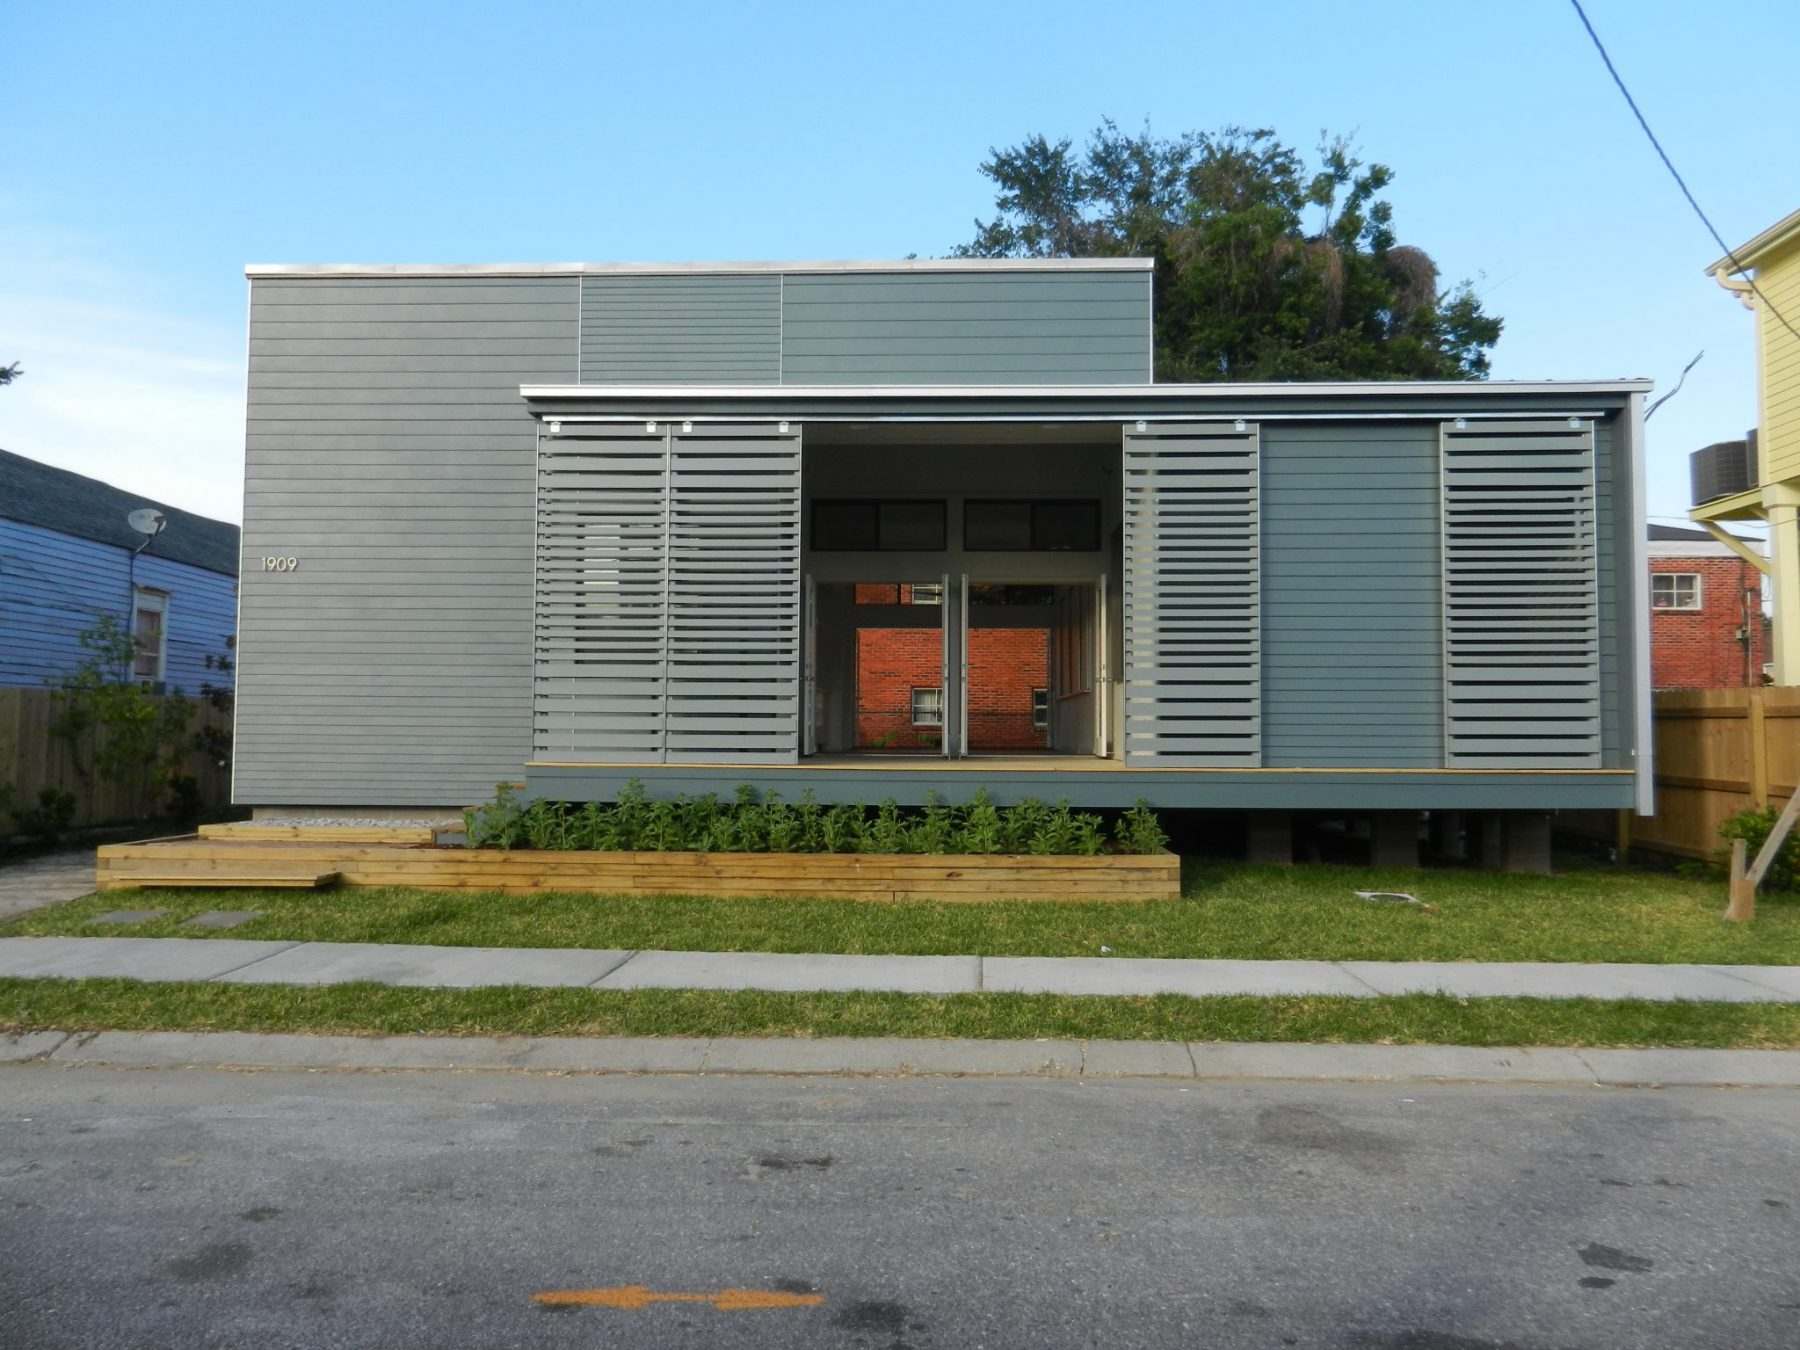 Front view of modern single-story home on an empty street.